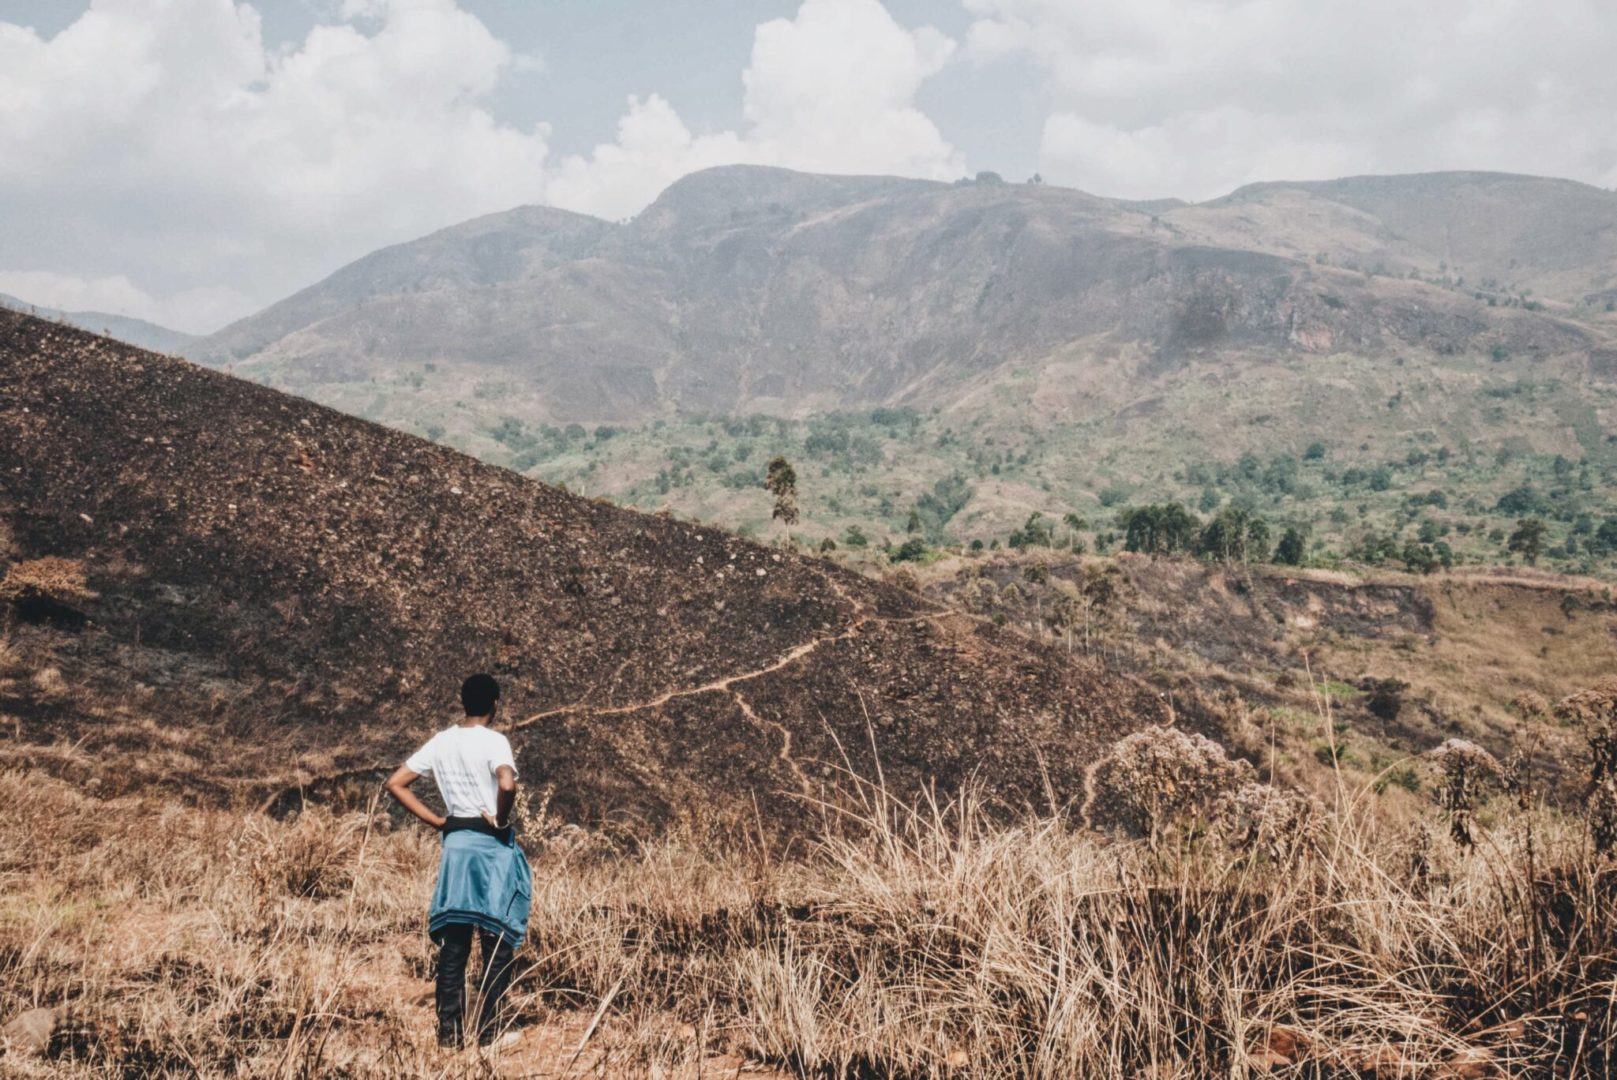 A Plant With Purpose staff member surveys watershed deforestation in the Democratic Republic of Congo. The lack of trees threaten its rural population's livelihood.